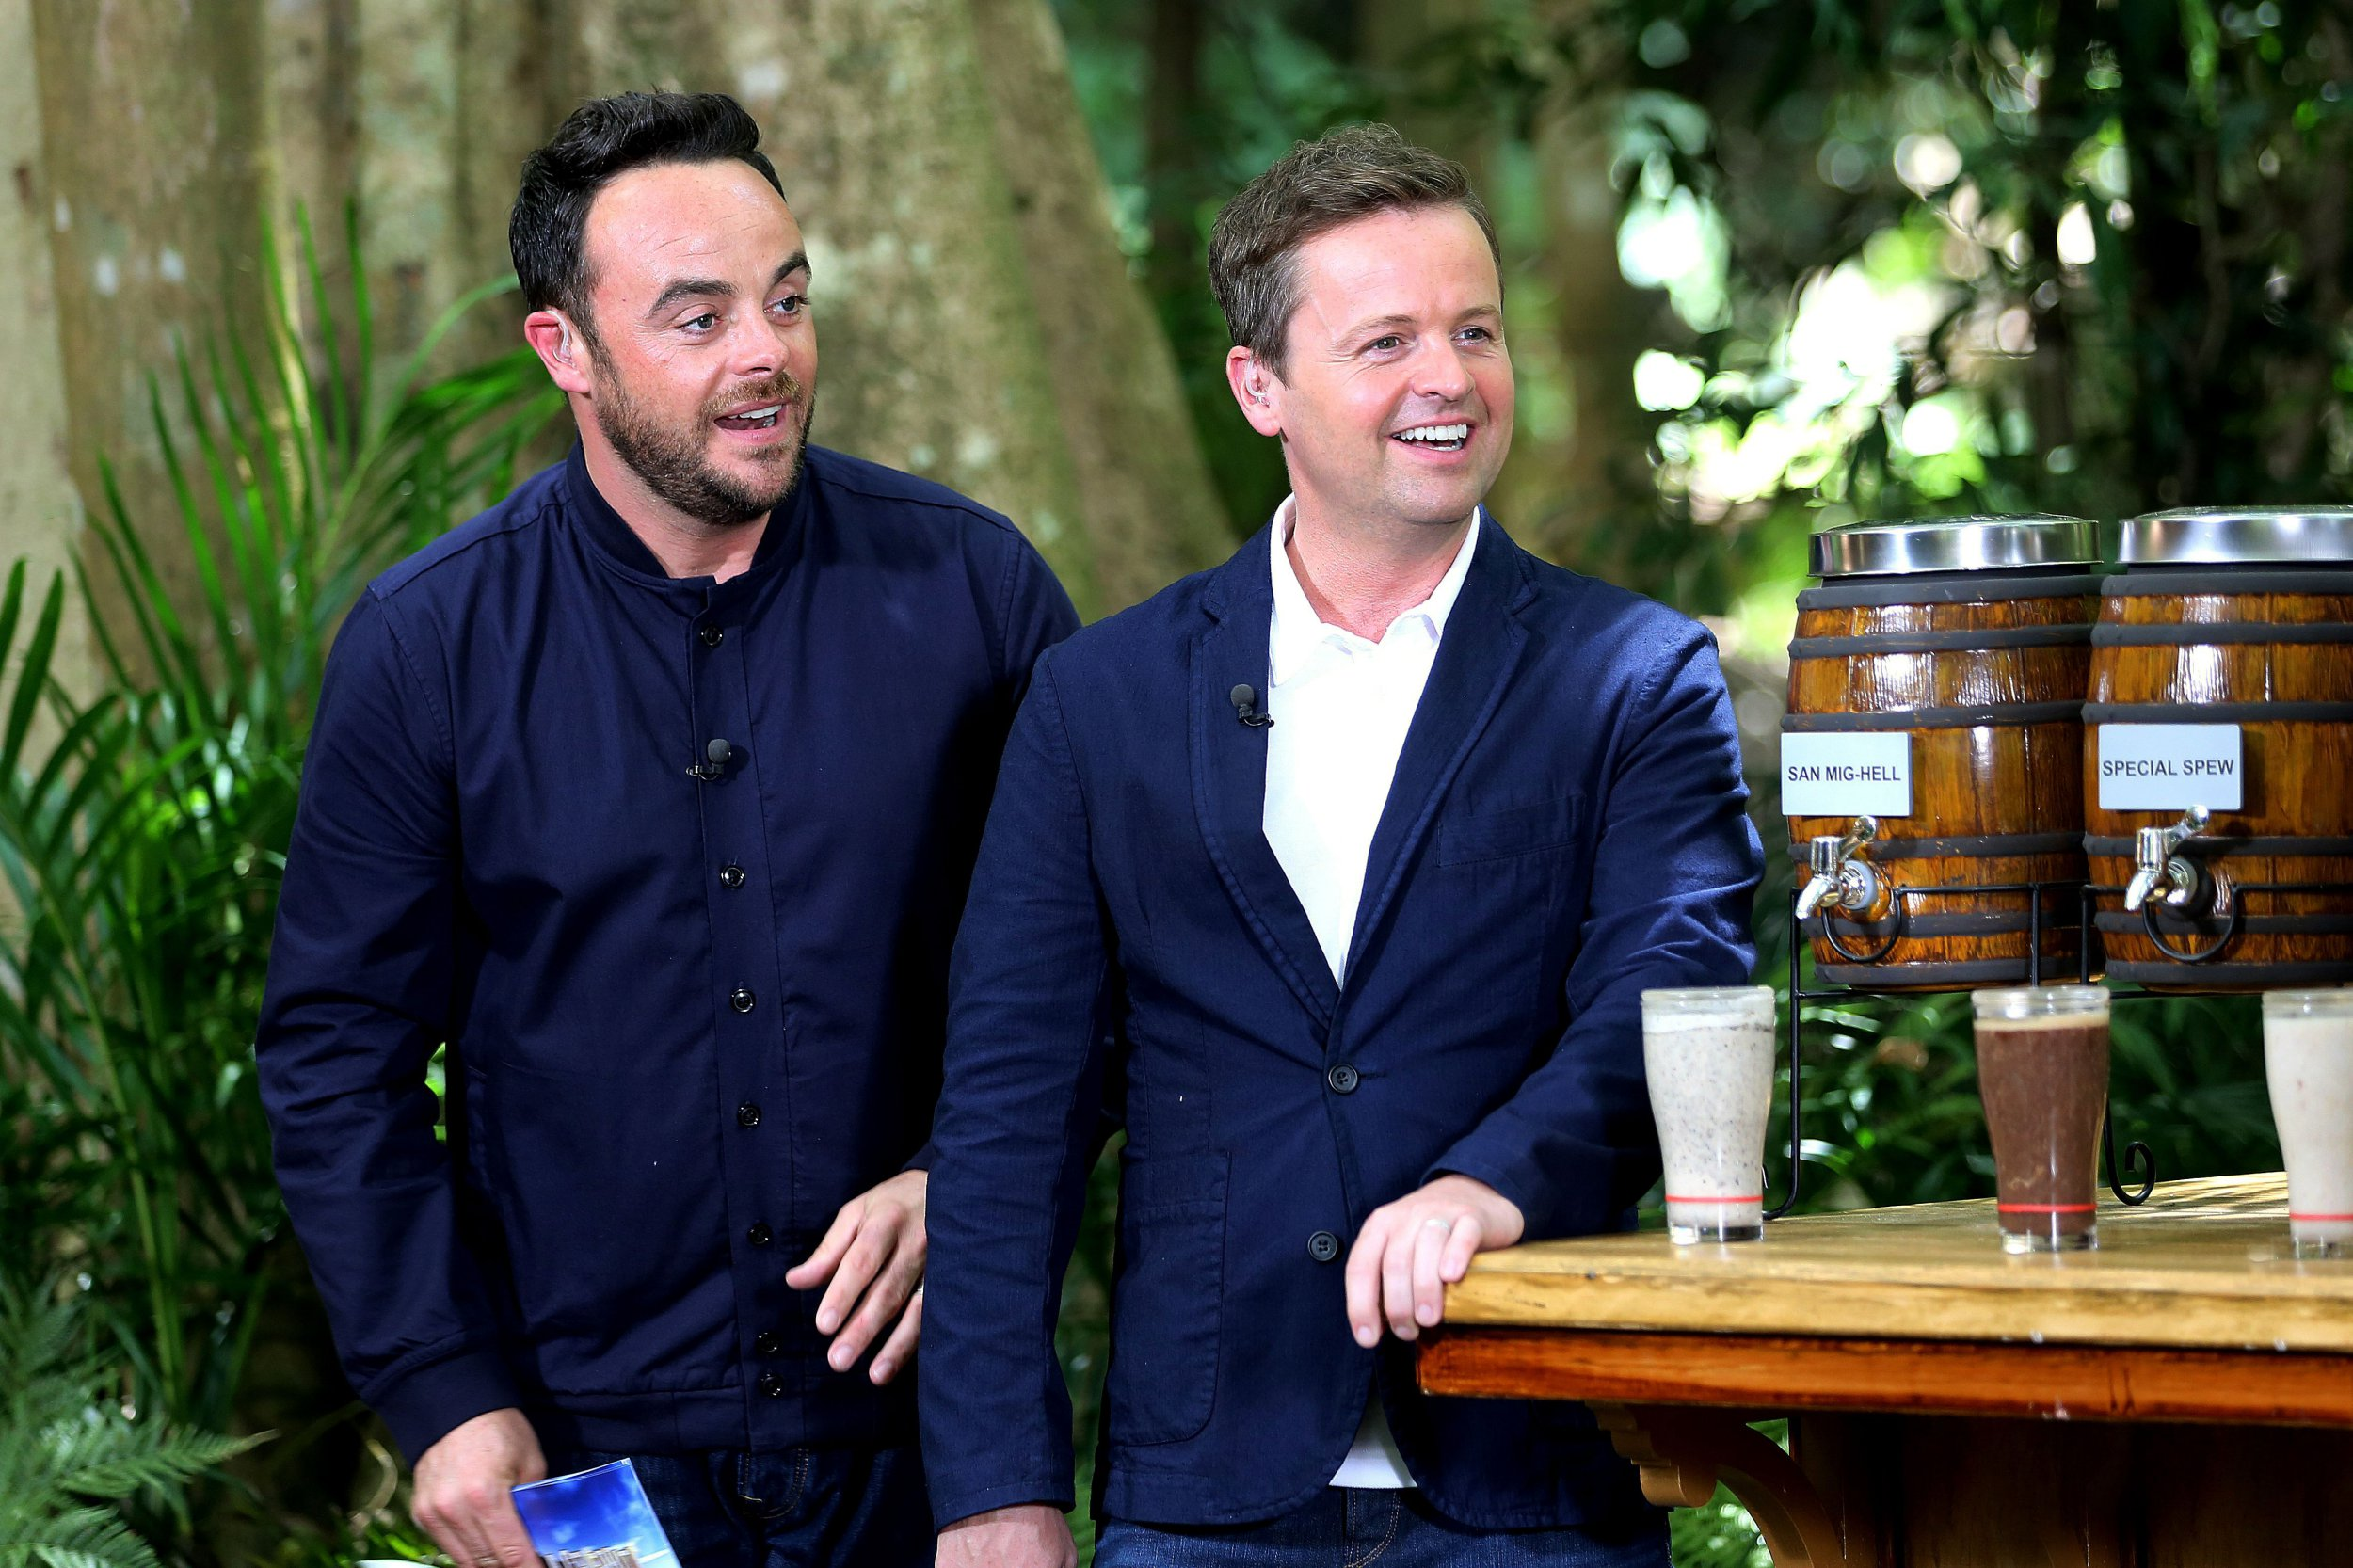 ***EMBARGO, NOT TO BE USED BEFORE 22:00 GMT, 24 Nov 2016 - EDITORIAL USE ONLY - NO MERCHANDISING*** Mandatory Credit: Photo by ITV/REX/Shutterstock (7471905at) Bushtucker Trial, Bush Brewery - Anthony McPartlin and Declan Donnelly 'I'm a Celebrity...Get Me Out of Here!' TV Show, Australia - 24 Nov 2016